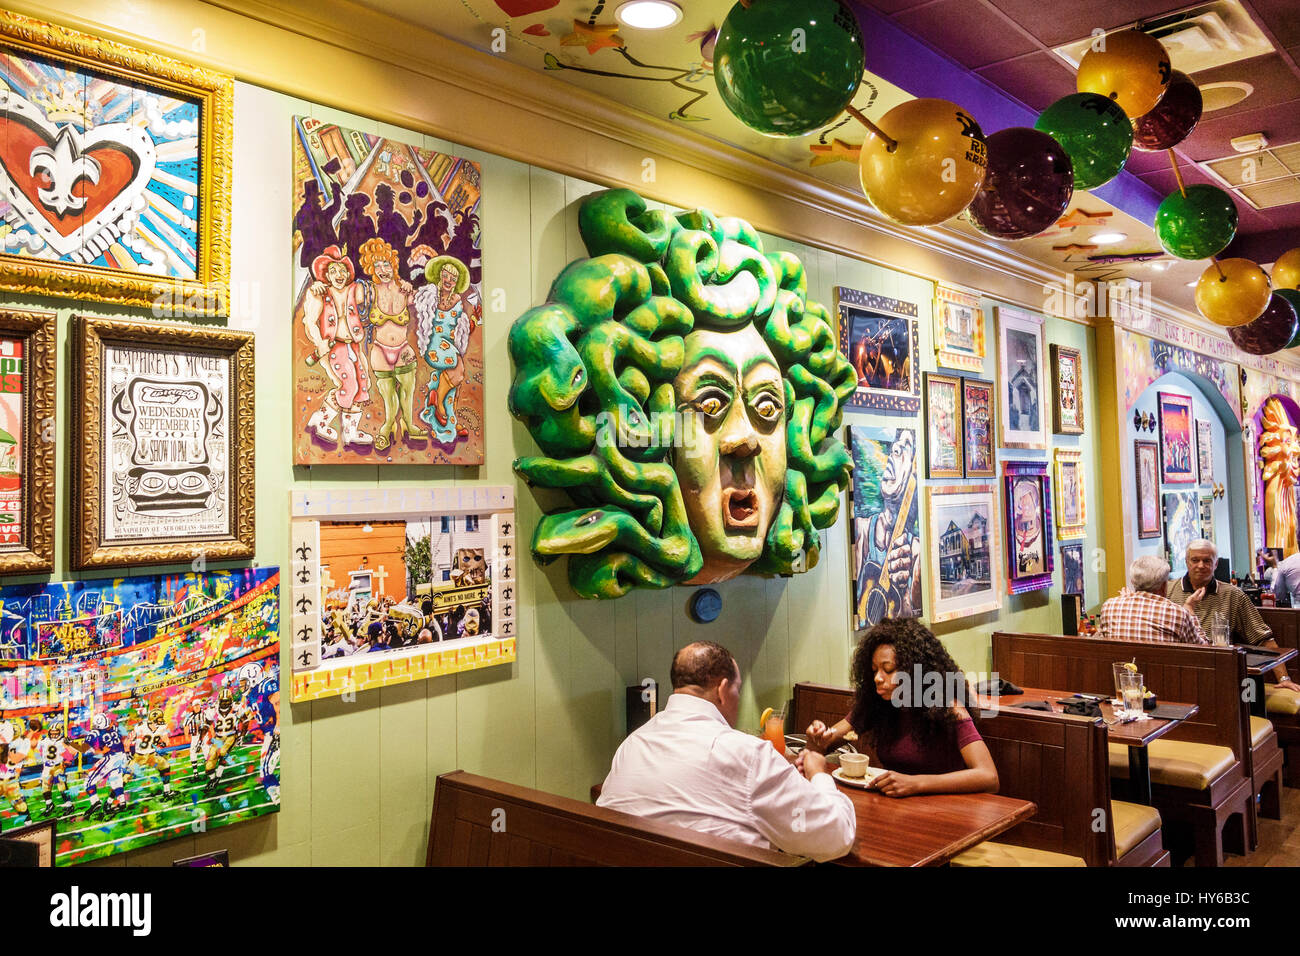 Winter Park Orlando Florida Tibbyu0027s New Orleans Kitchen Restaurant Interior  Carnival Theme Decor Booth Man Black Woman